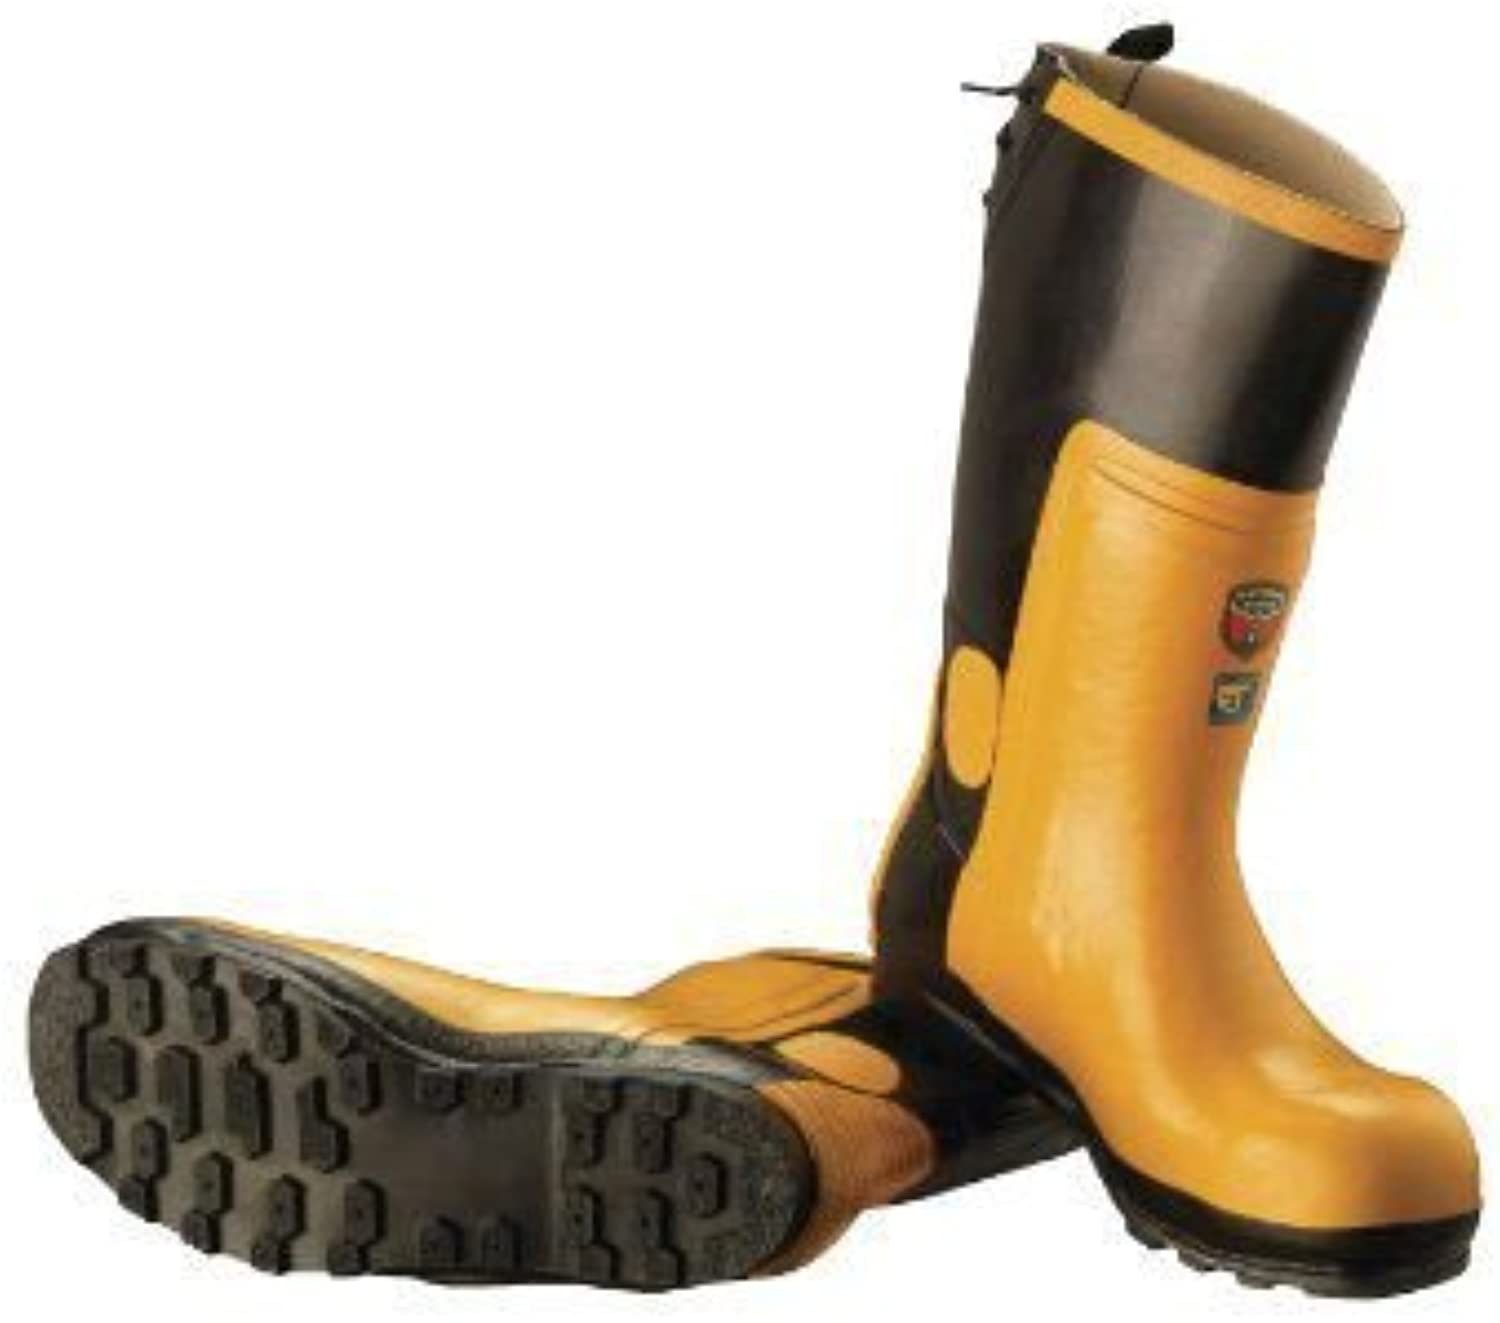 McCulloch CLO001 Predective Rubber Chainsaw Boots with Steel Toe Cap - Size 40